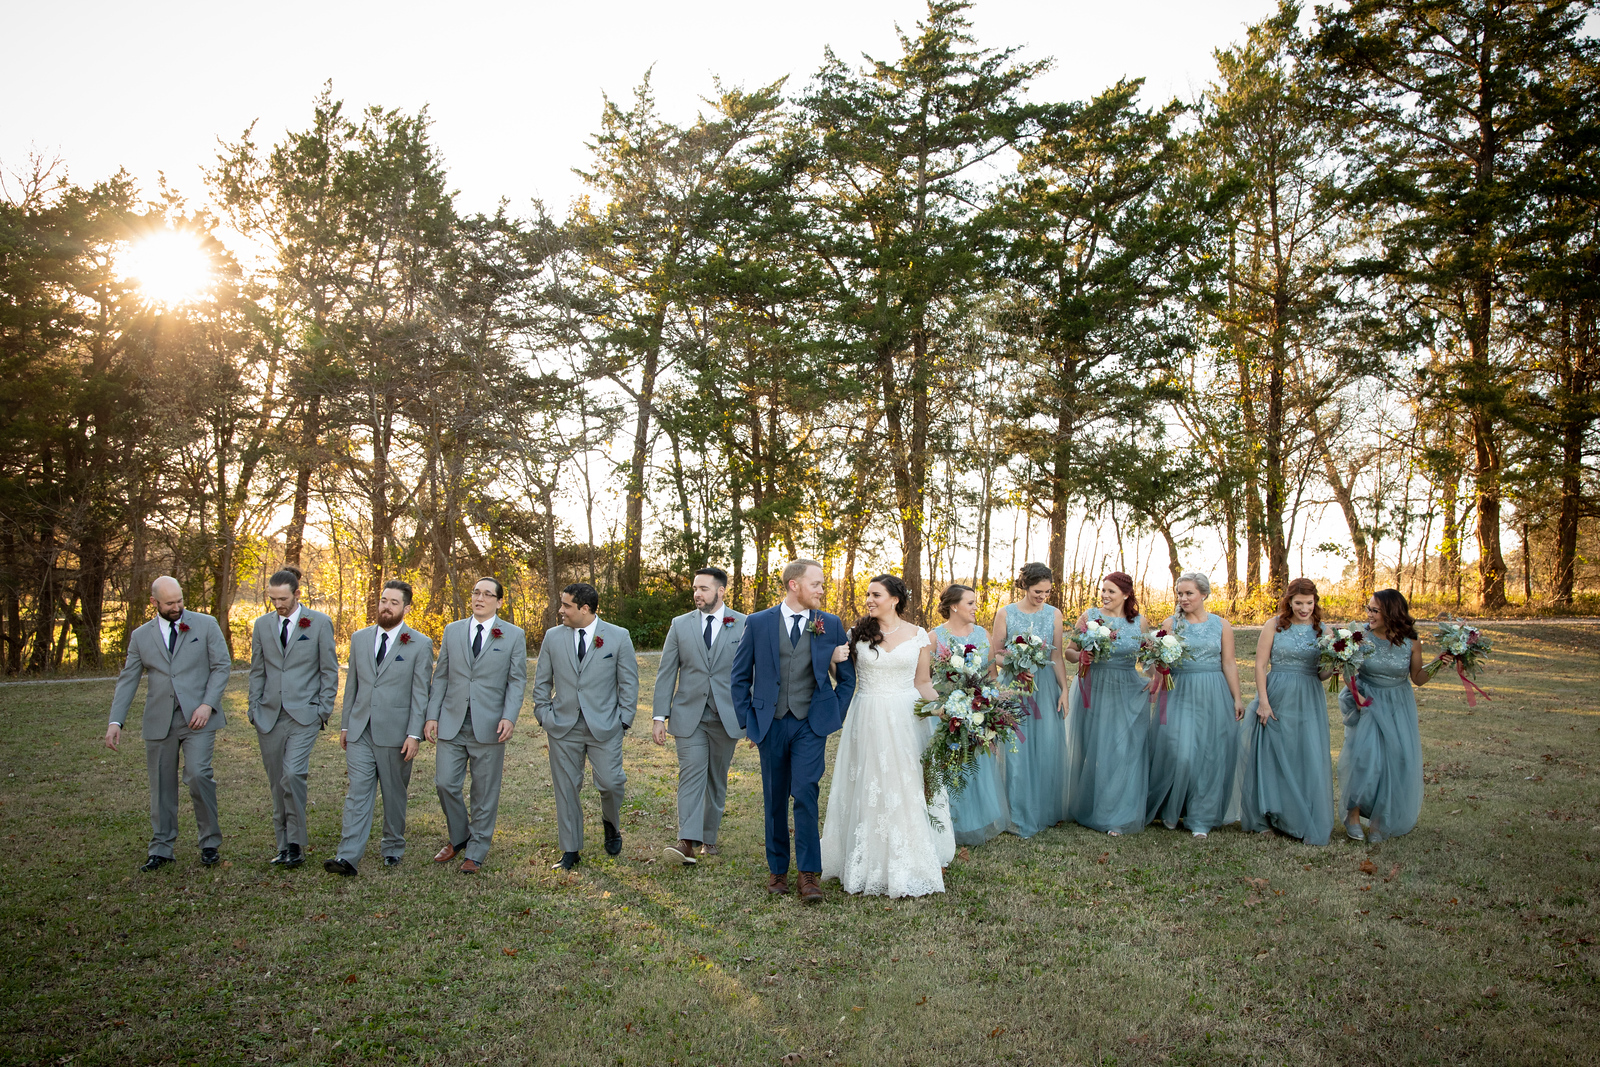 six groomsmen wearing grey suits groom wearing navy suit bride wearing white a-line gown six bridesmaids wearing tiffany blue dresses all walking in a line